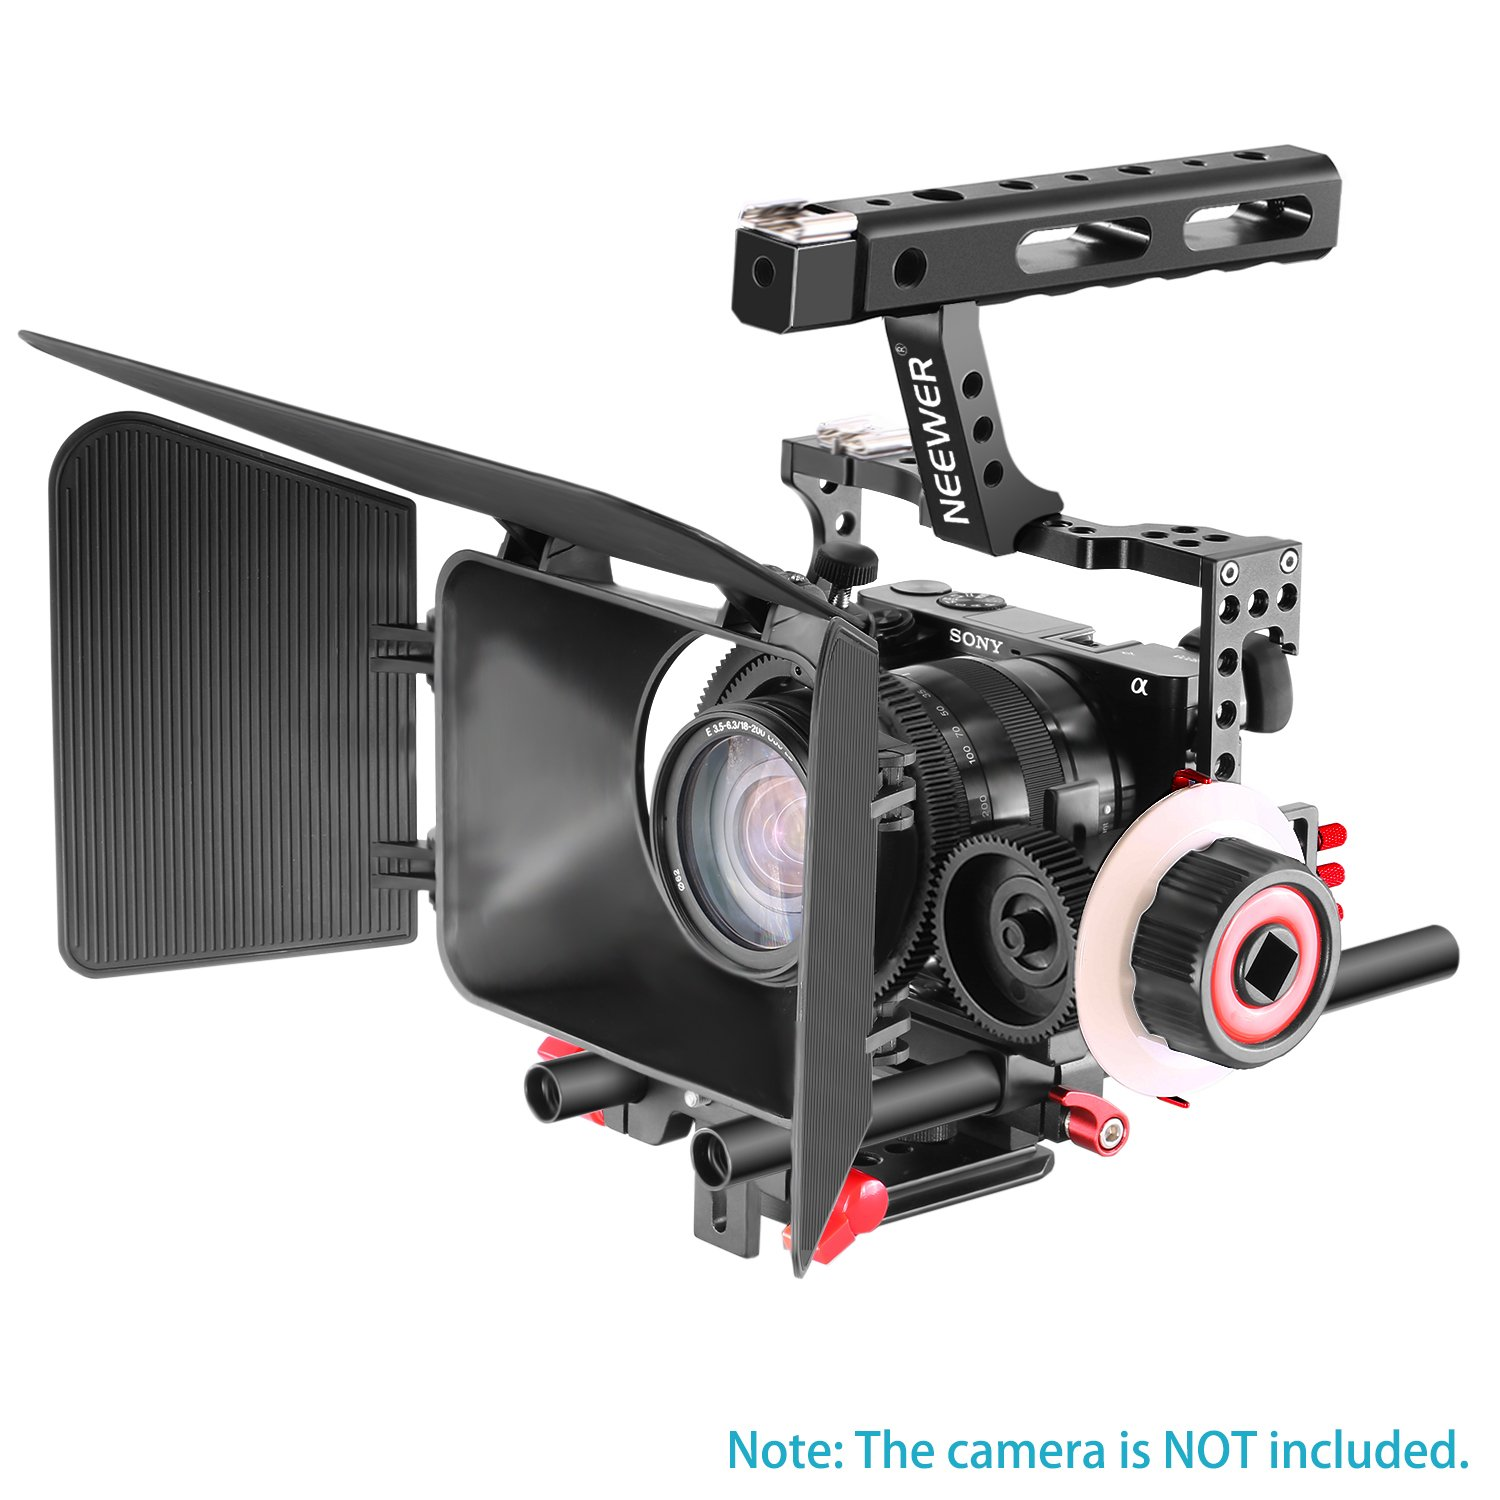 Red+Black Neewer Film Making Camera Video Cage with 15mm Rail Rods Matte Box Follow Focus with Gear Ring Belt for Sony A7 A7S A7SII A7R A7II A6000 A6300 Panasonic GH4 GH3 Cameras